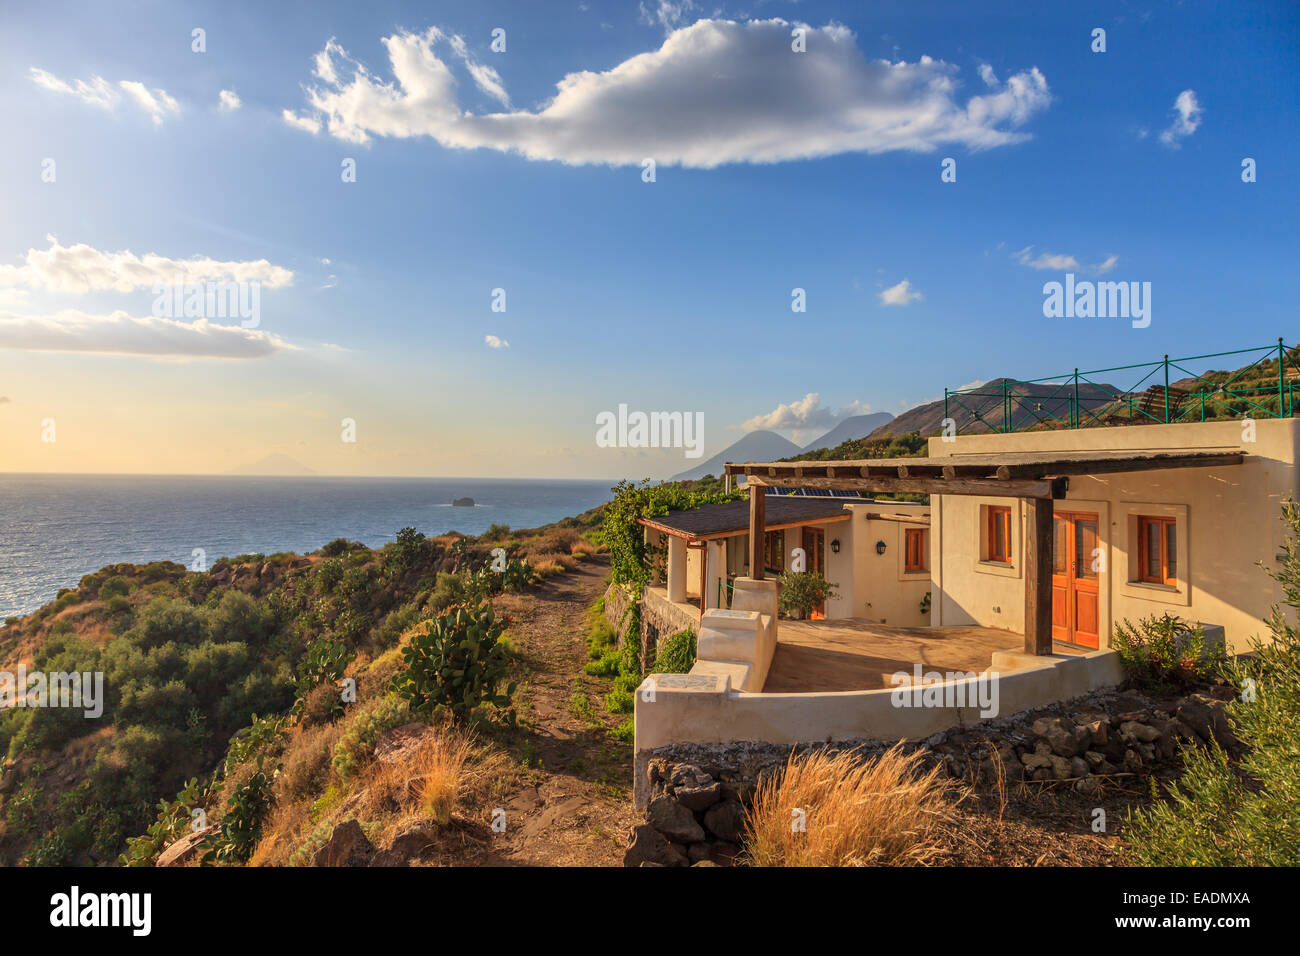 Aeolian house with a beautiful sea view - Stock Image